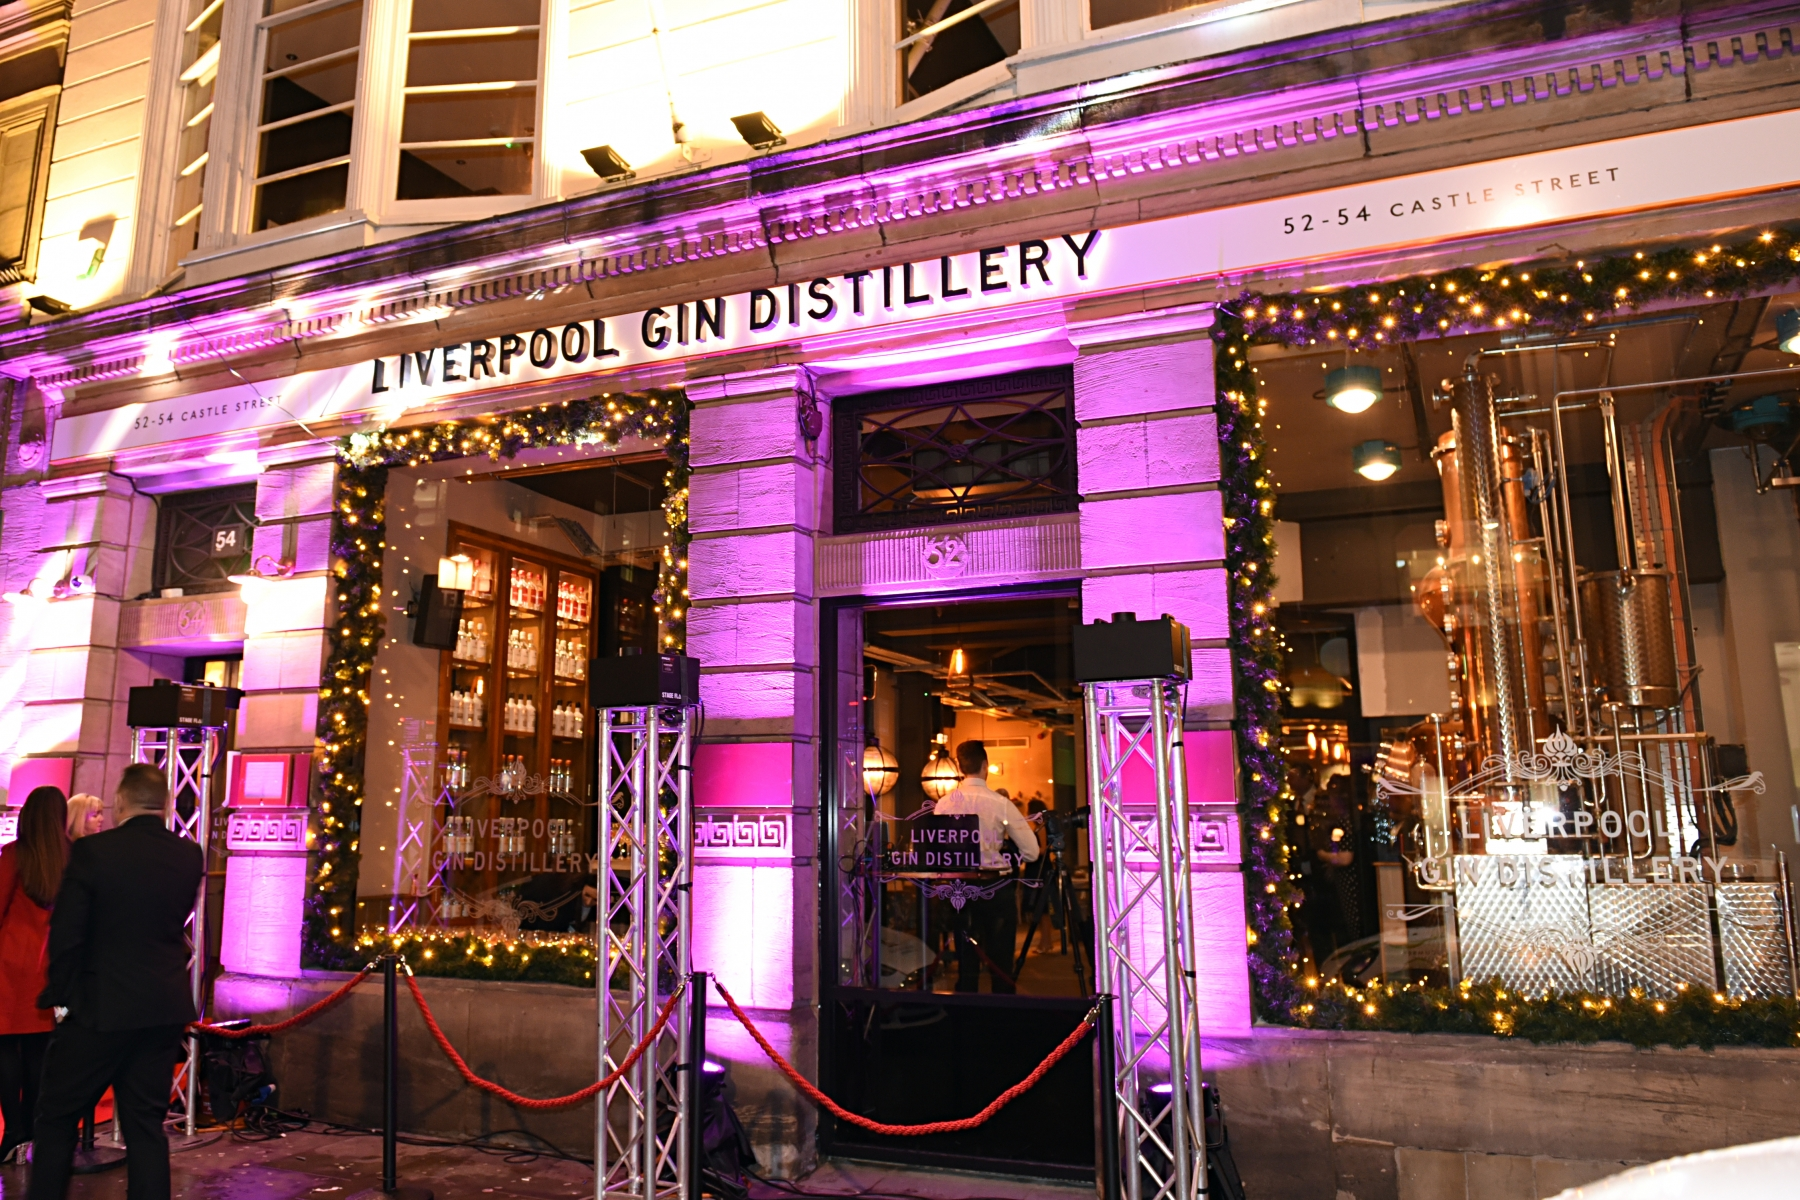 Liverpool Gin Distillery best bars and restaurants liverpool hen party photo of exterior